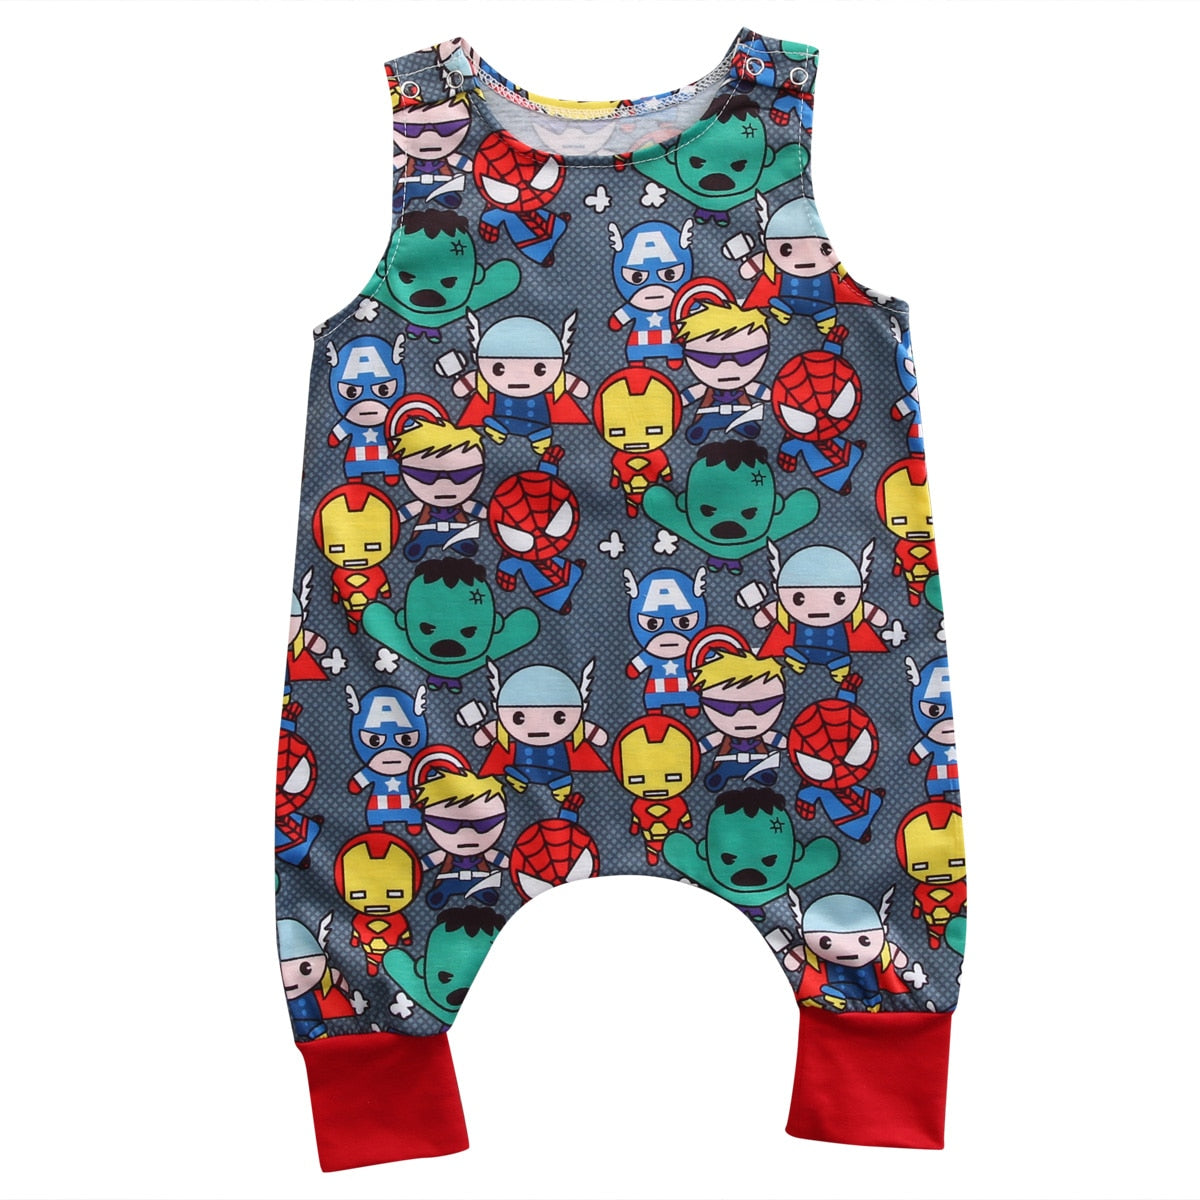 Pudcoco Infant Romper Jumpsuit Summer Newborn Tank Romper Baby Clothes Cotton Super Heroes-eosegal